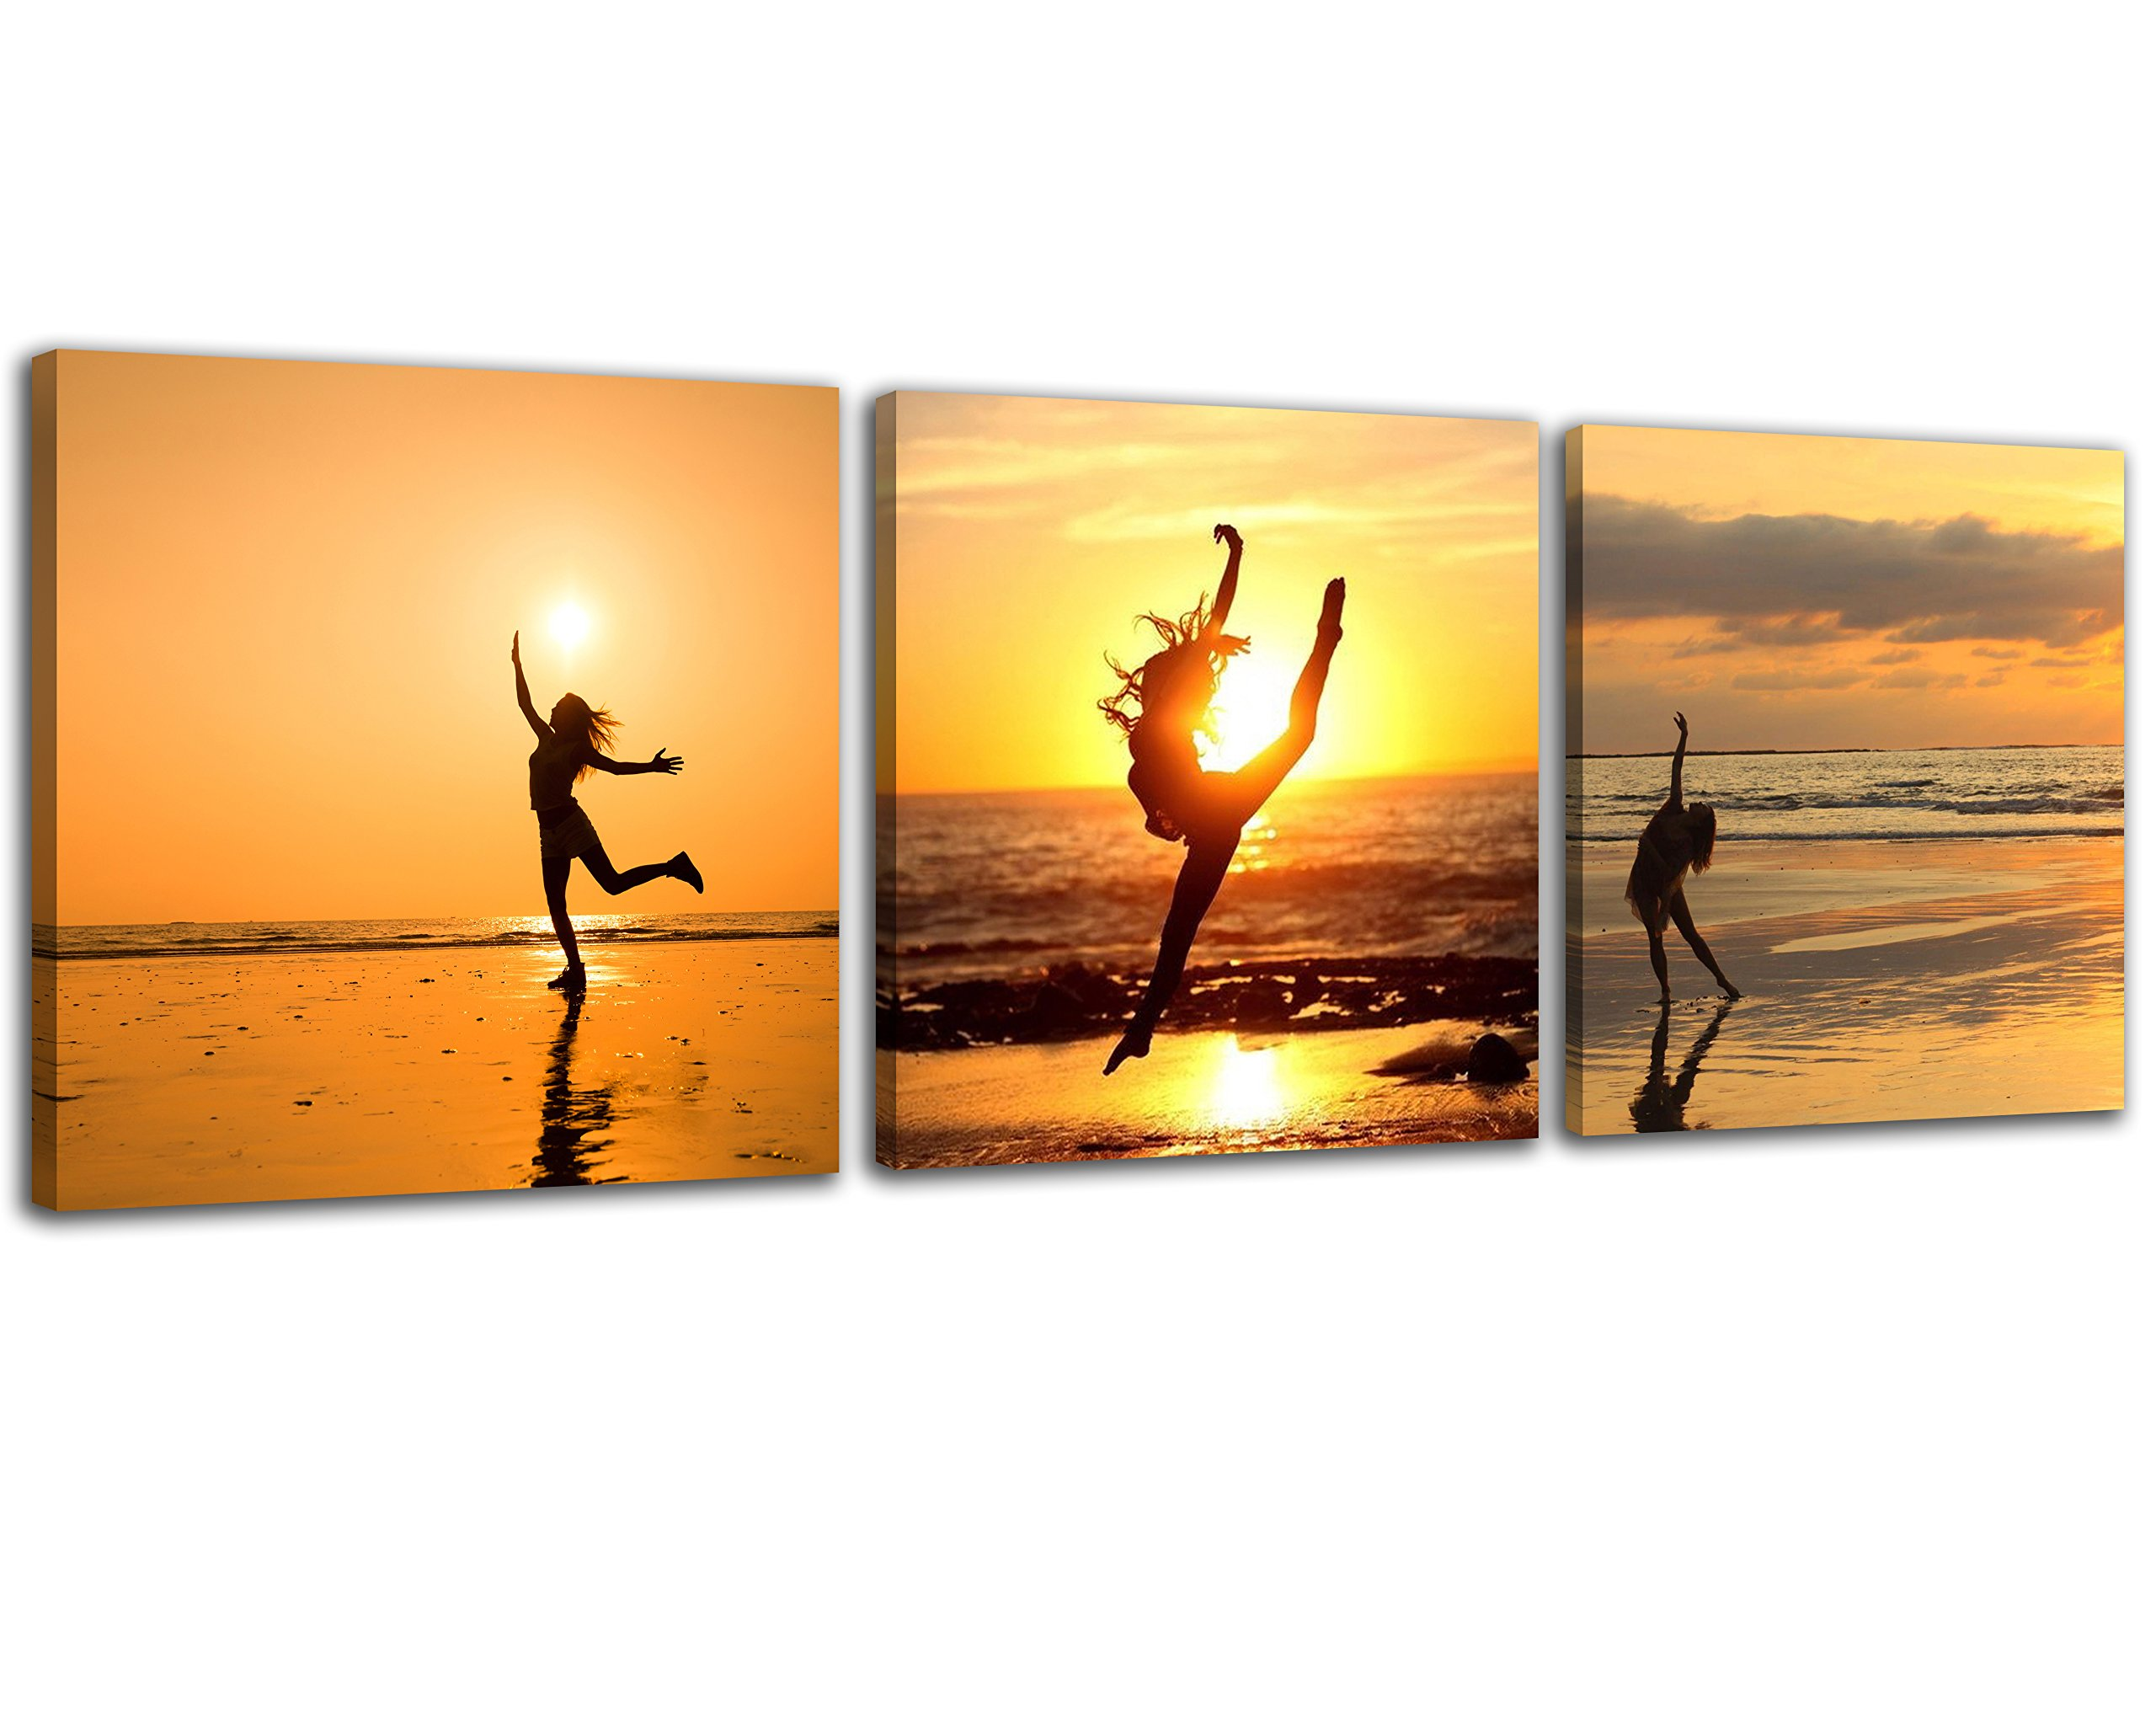 NAN Wind 3 Pcs Canvas Print Girl Dancing in The Sunset on Beach Wall Art Dancing Water Painting Girl Dance Pictures Print On Canvas for Home Decor Decoration Gift